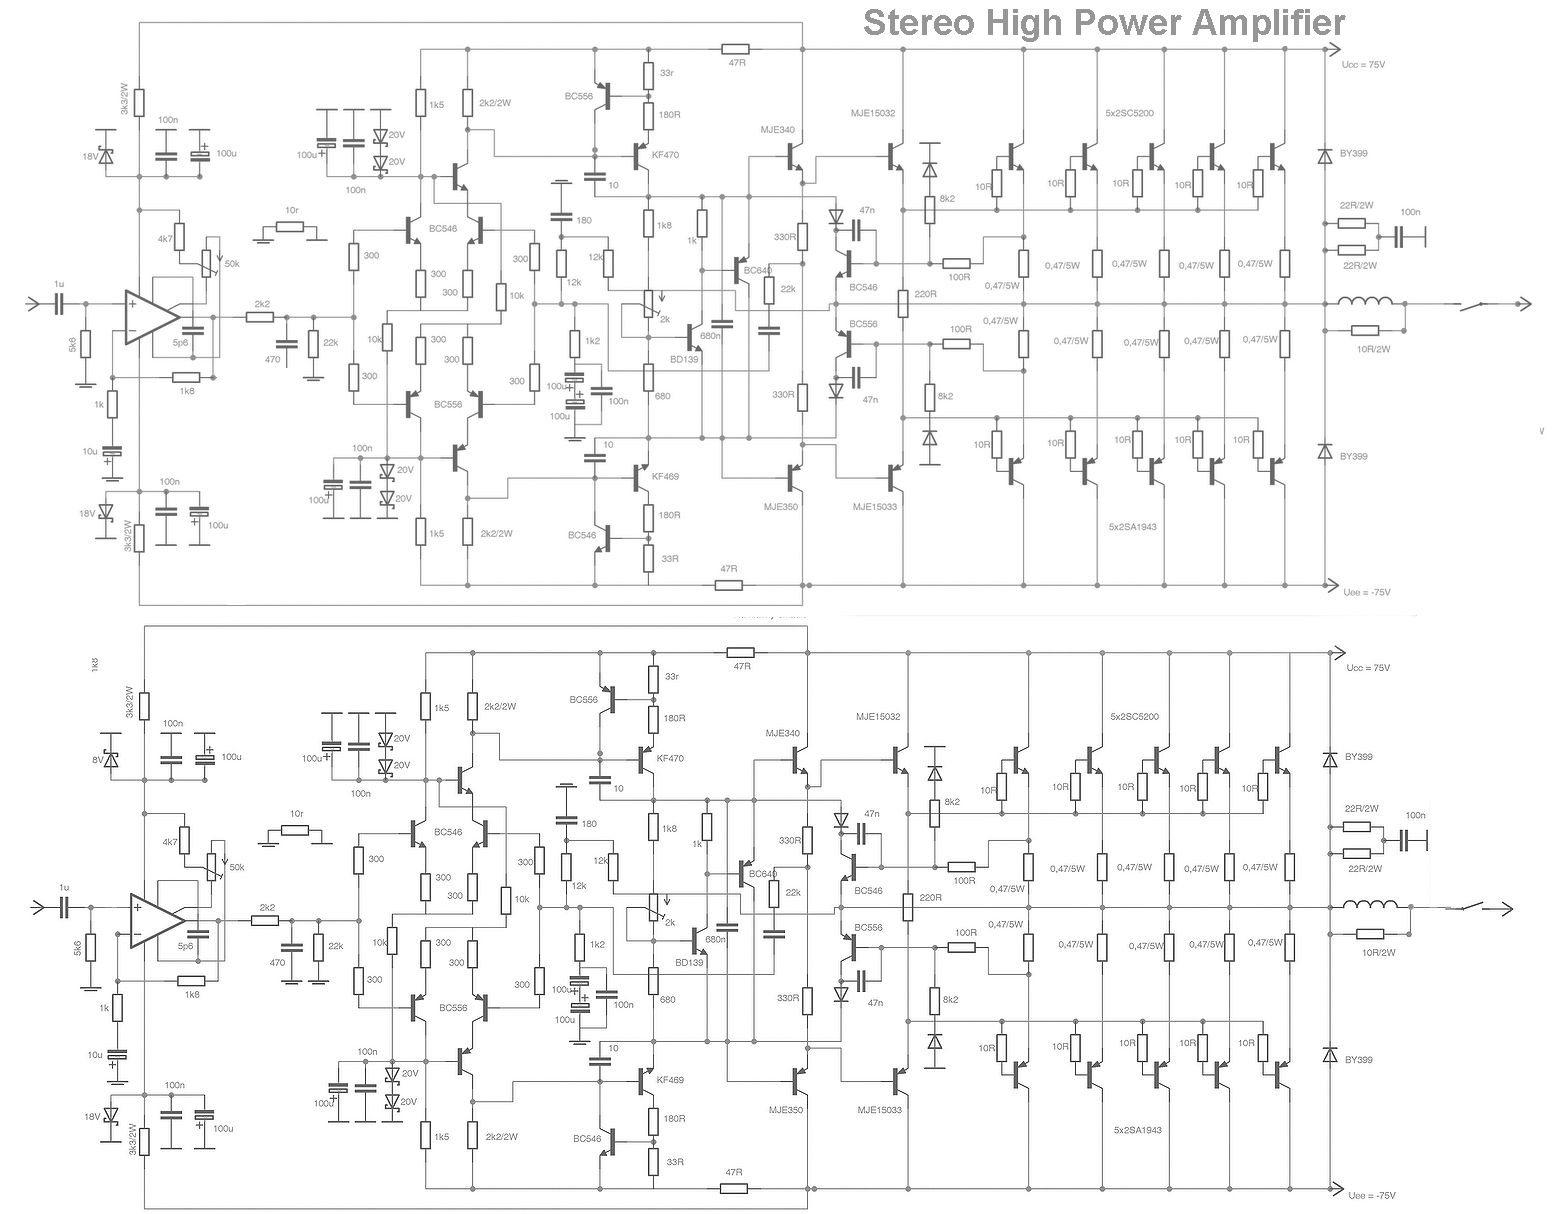 This Is High Power Amplifier 800w Rms Output By Using 75vdc Tube Otl Headphone Circuit Diagram Amplifiercircuit Https Googlecouk Searchqhigh